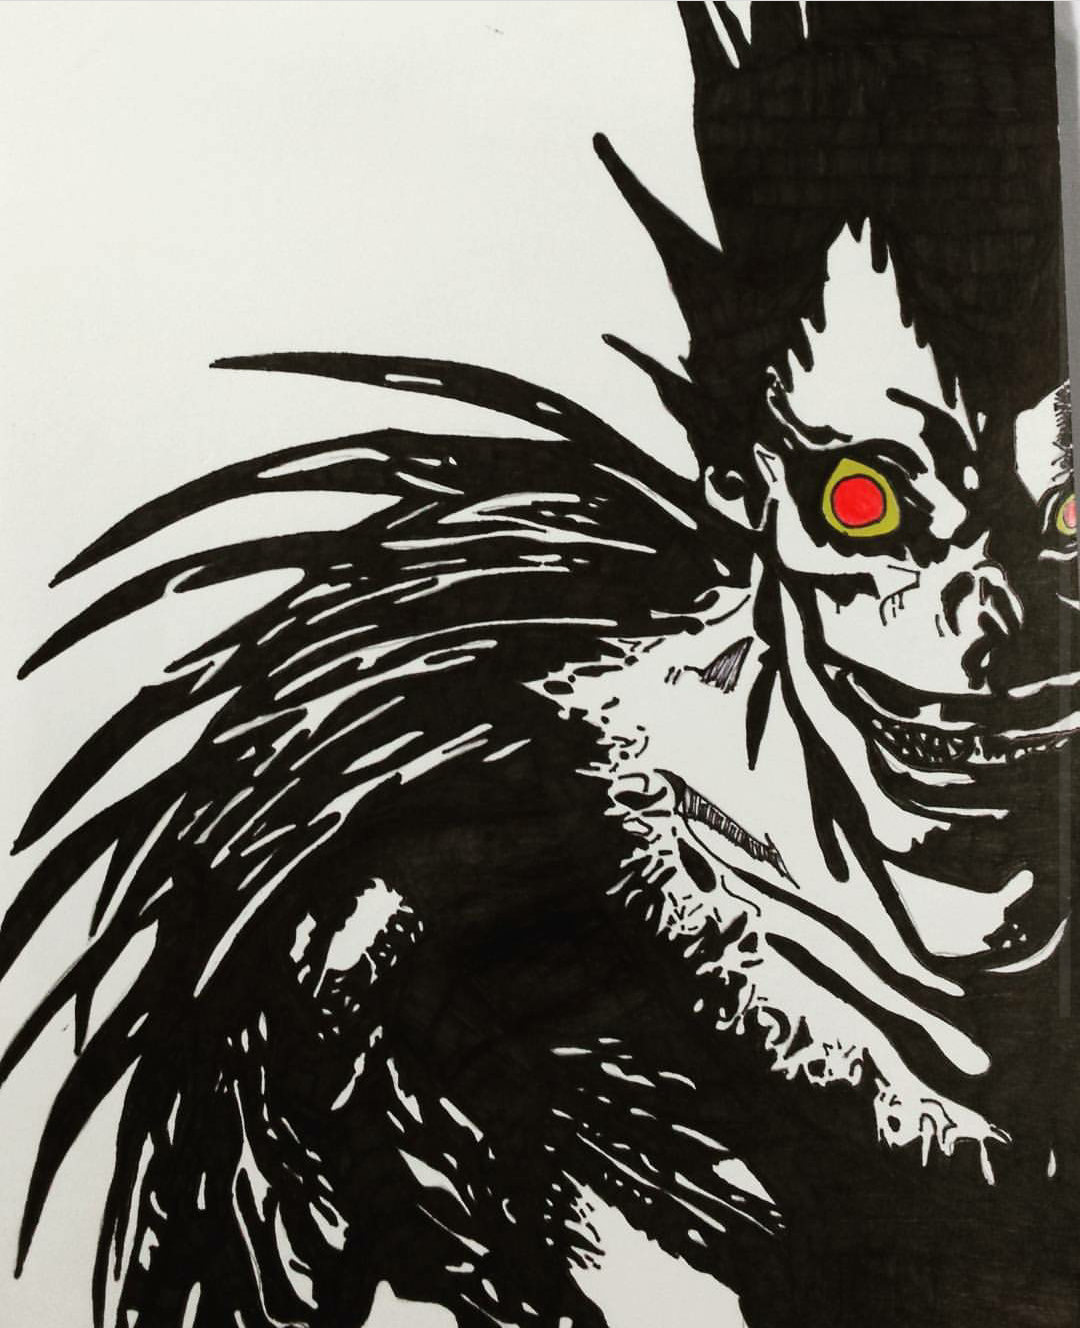 Tried Something New Ryuk The Shinigami From Deathnote